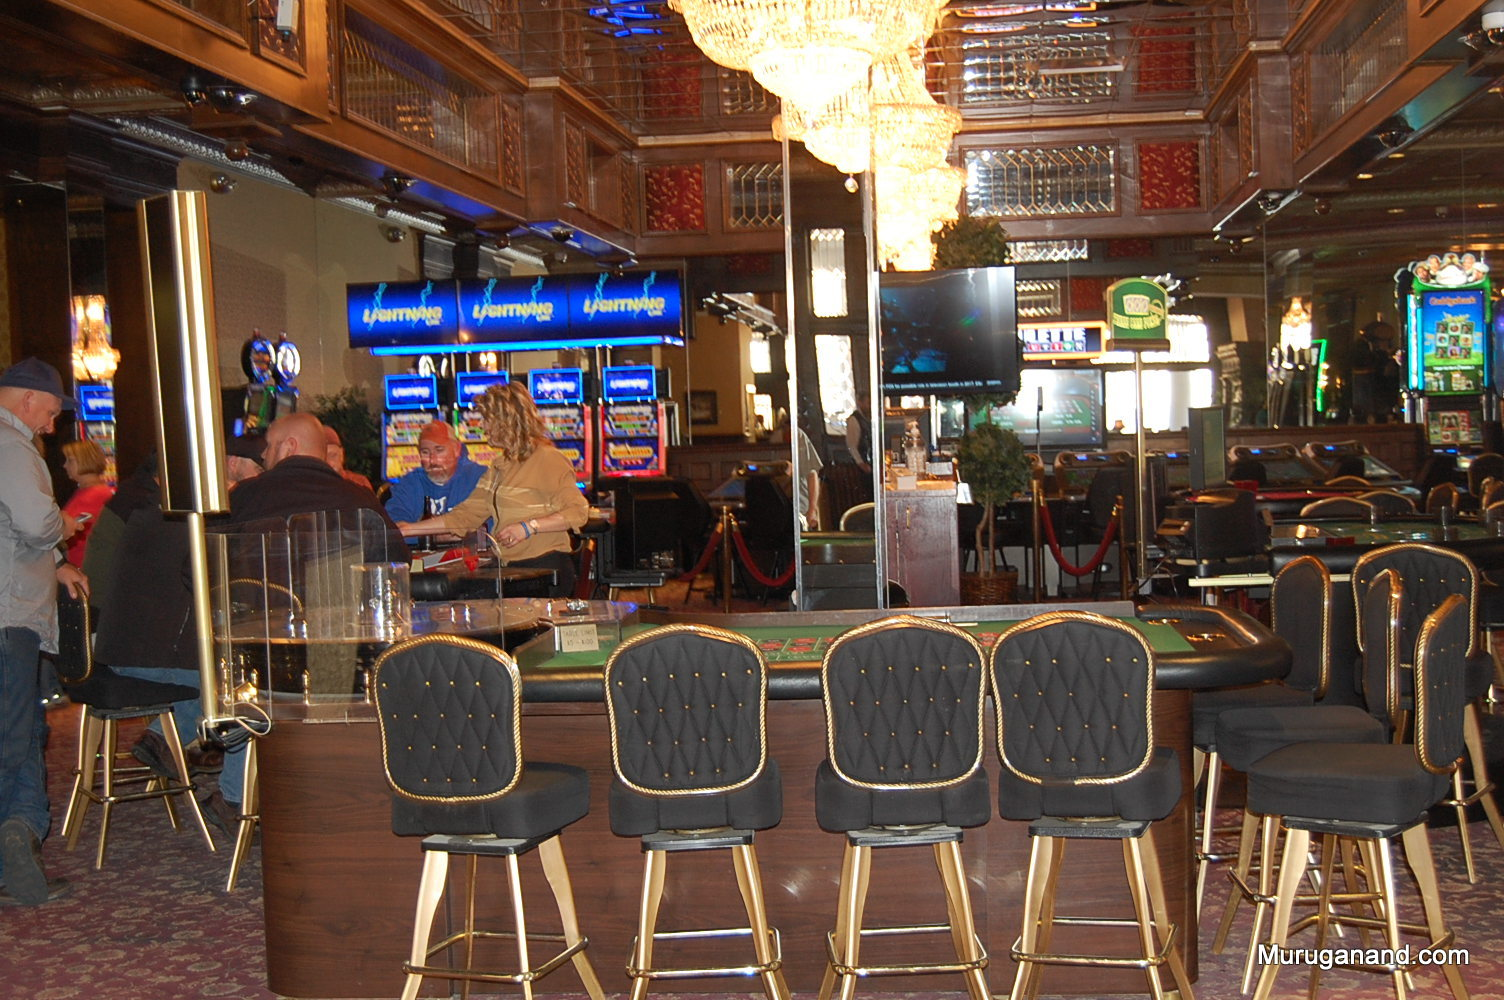 Modern Casinos with slot machines, poker, kino and other tables.